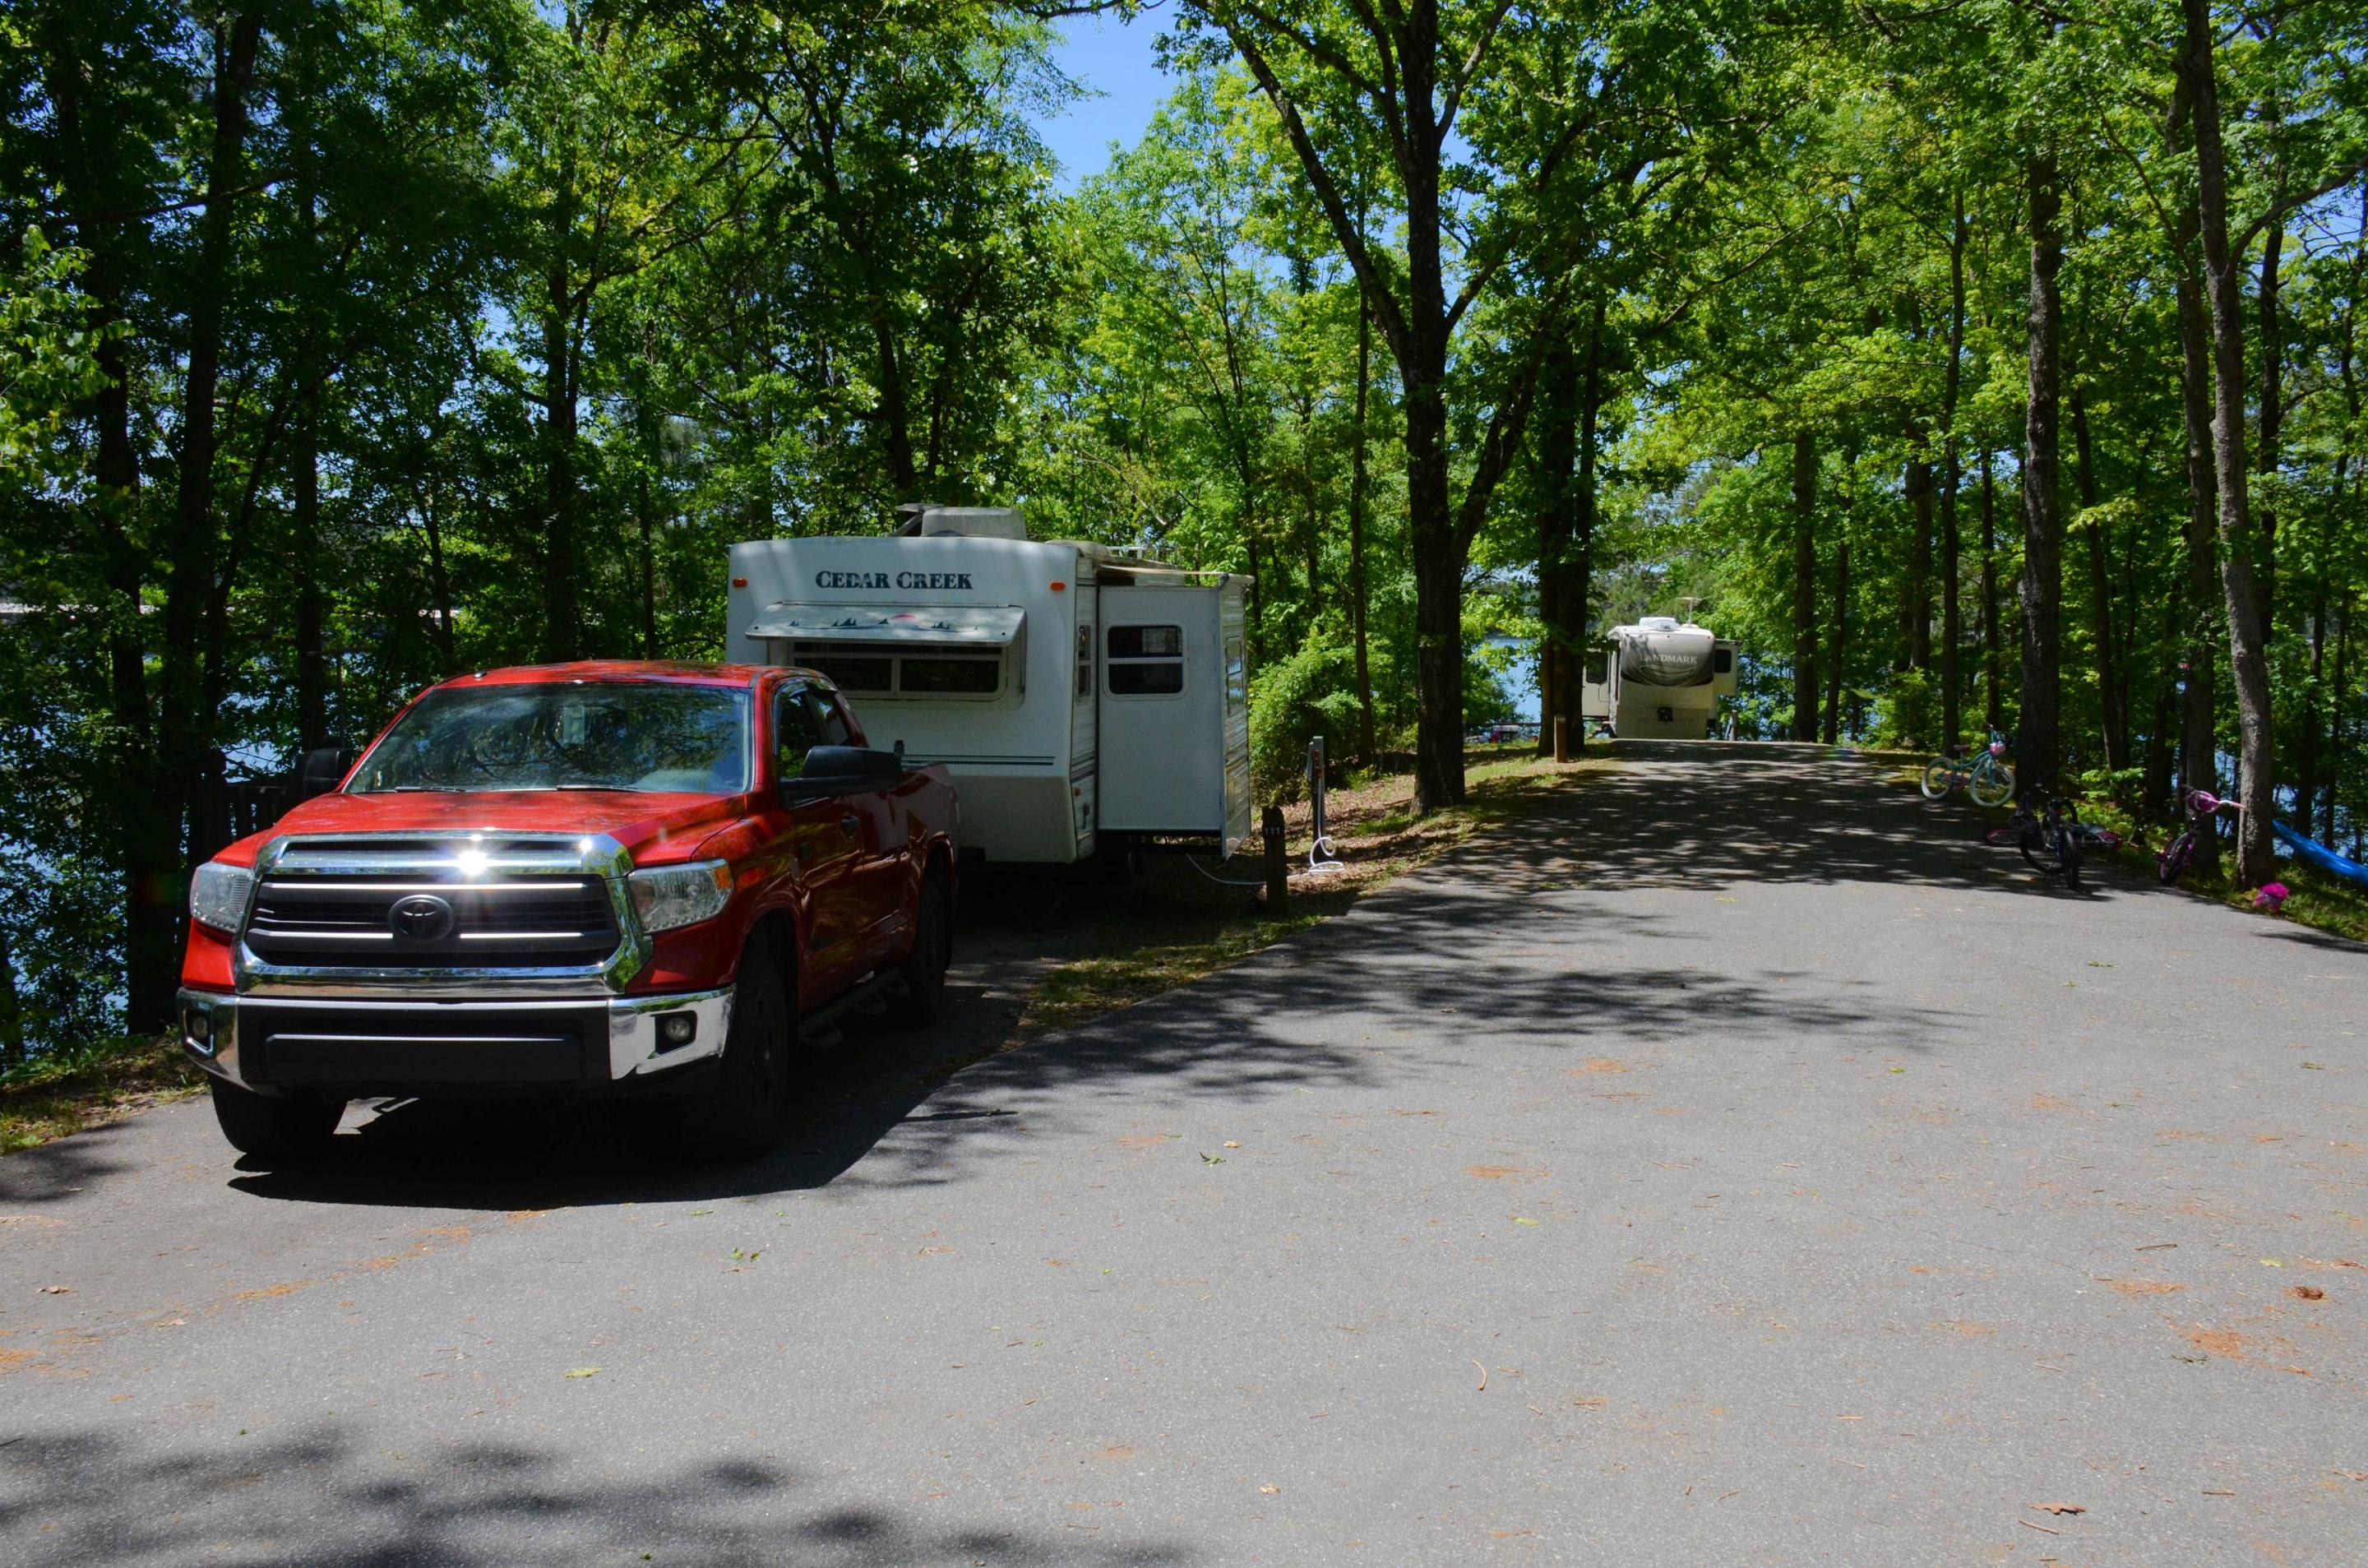 Driveway slope, utilities-side clearance.McKinney Campground, campsite 111.